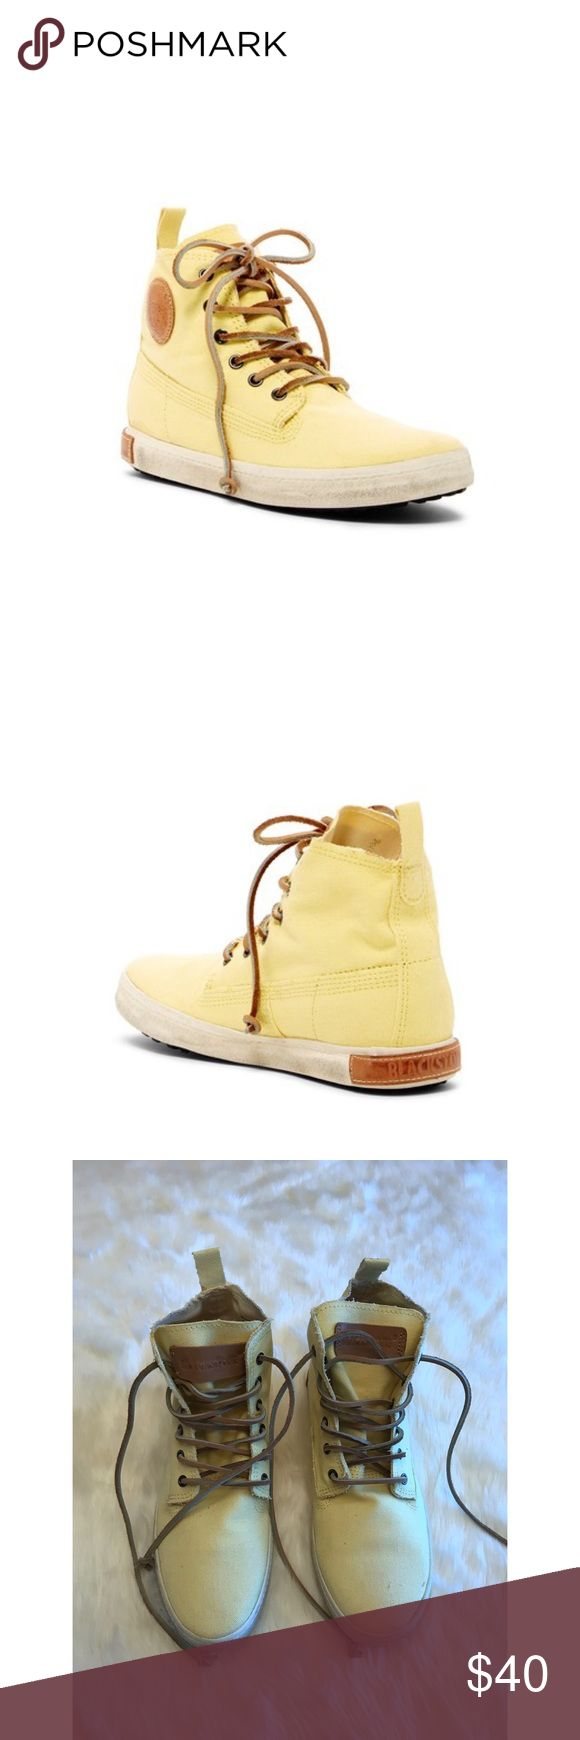 Blackstone High Top Sneakers Yellow canvas high top sneakers in great condition. Blackstone Shoes Sneakers